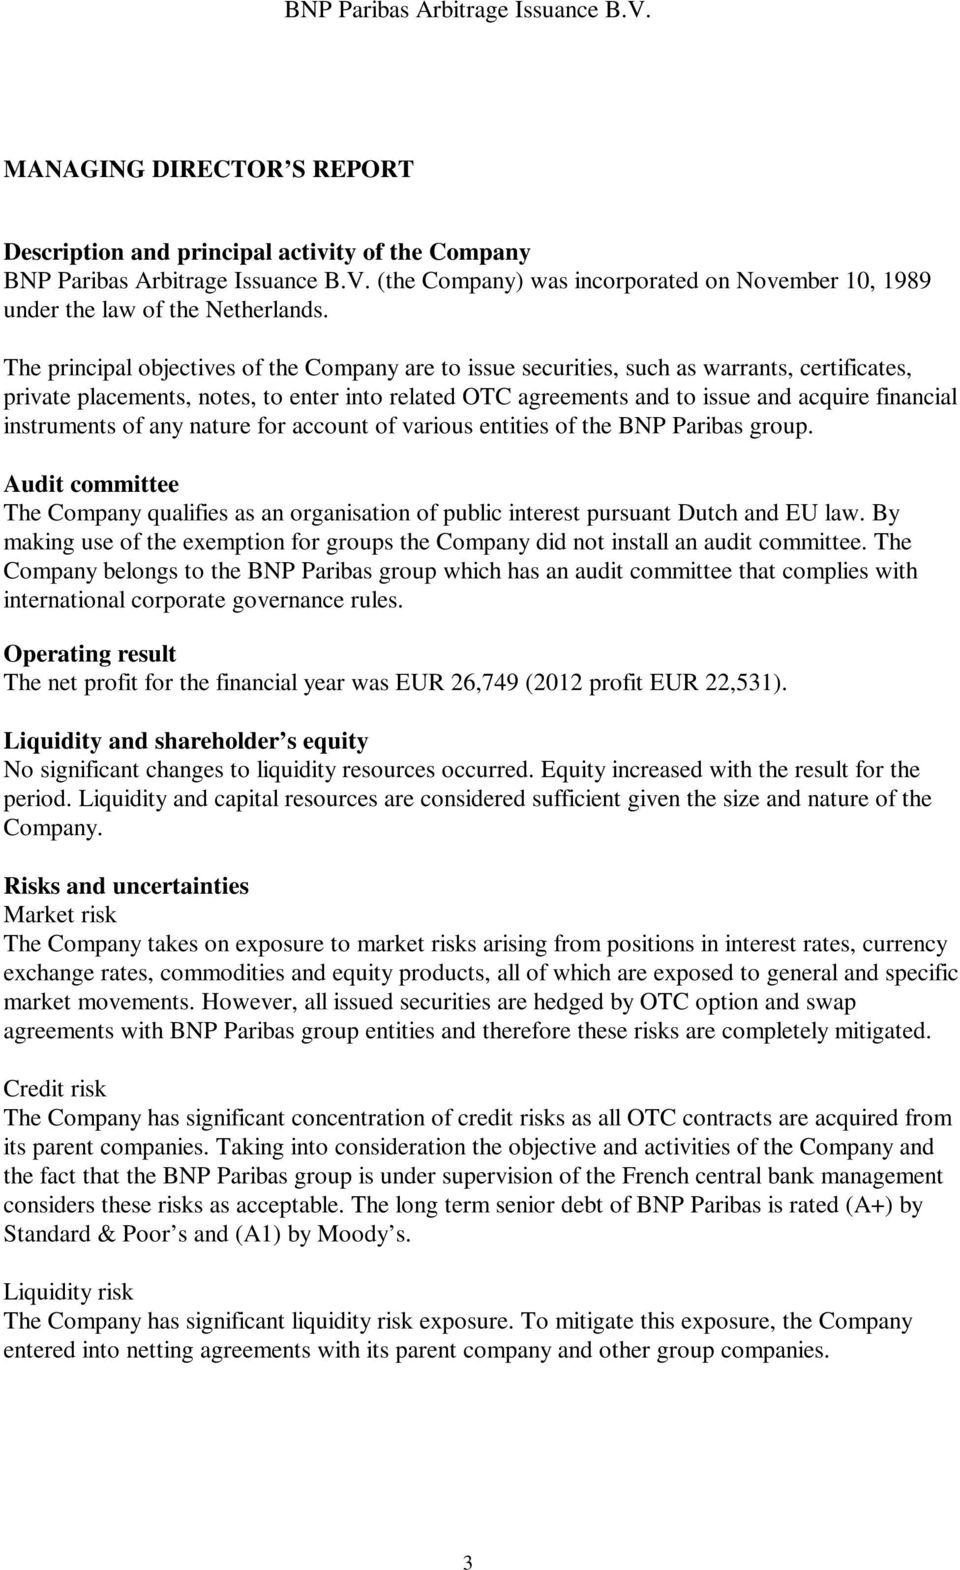 instruments of any nature for account of various entities of the BNP Paribas group. Audit committee The Company qualifies as an organisation of public interest pursuant Dutch and EU law.